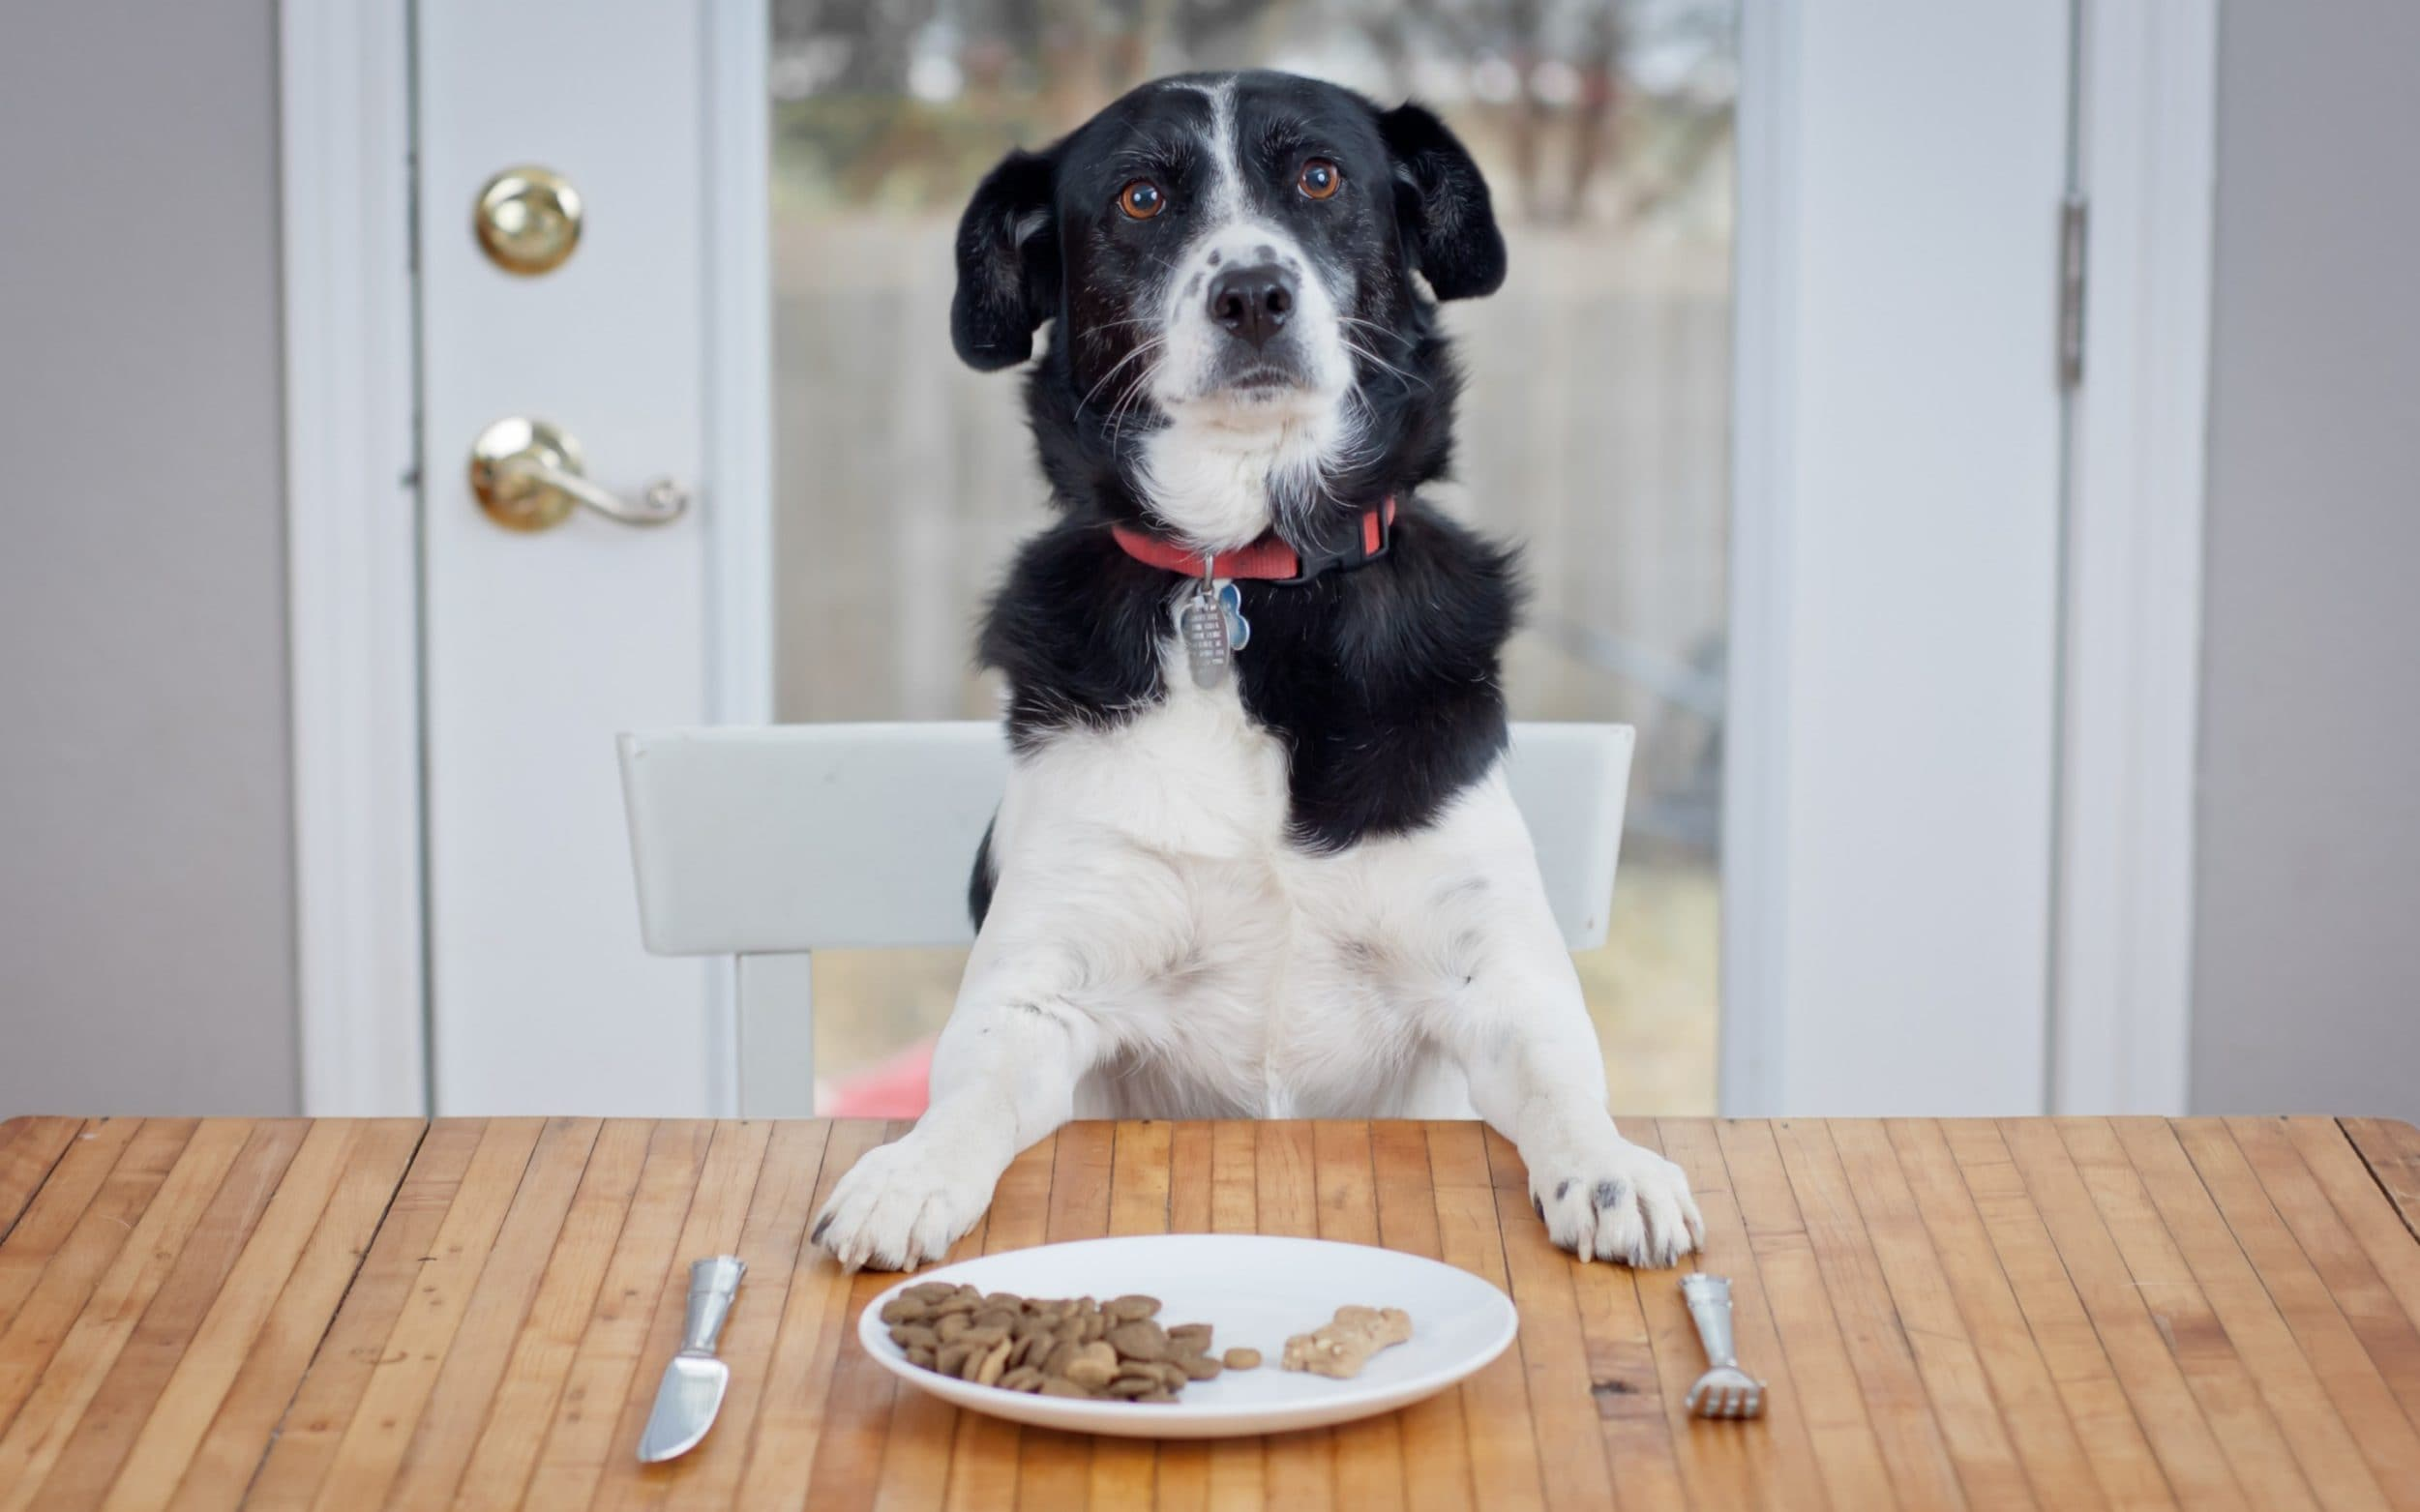 Foods for Your Dog